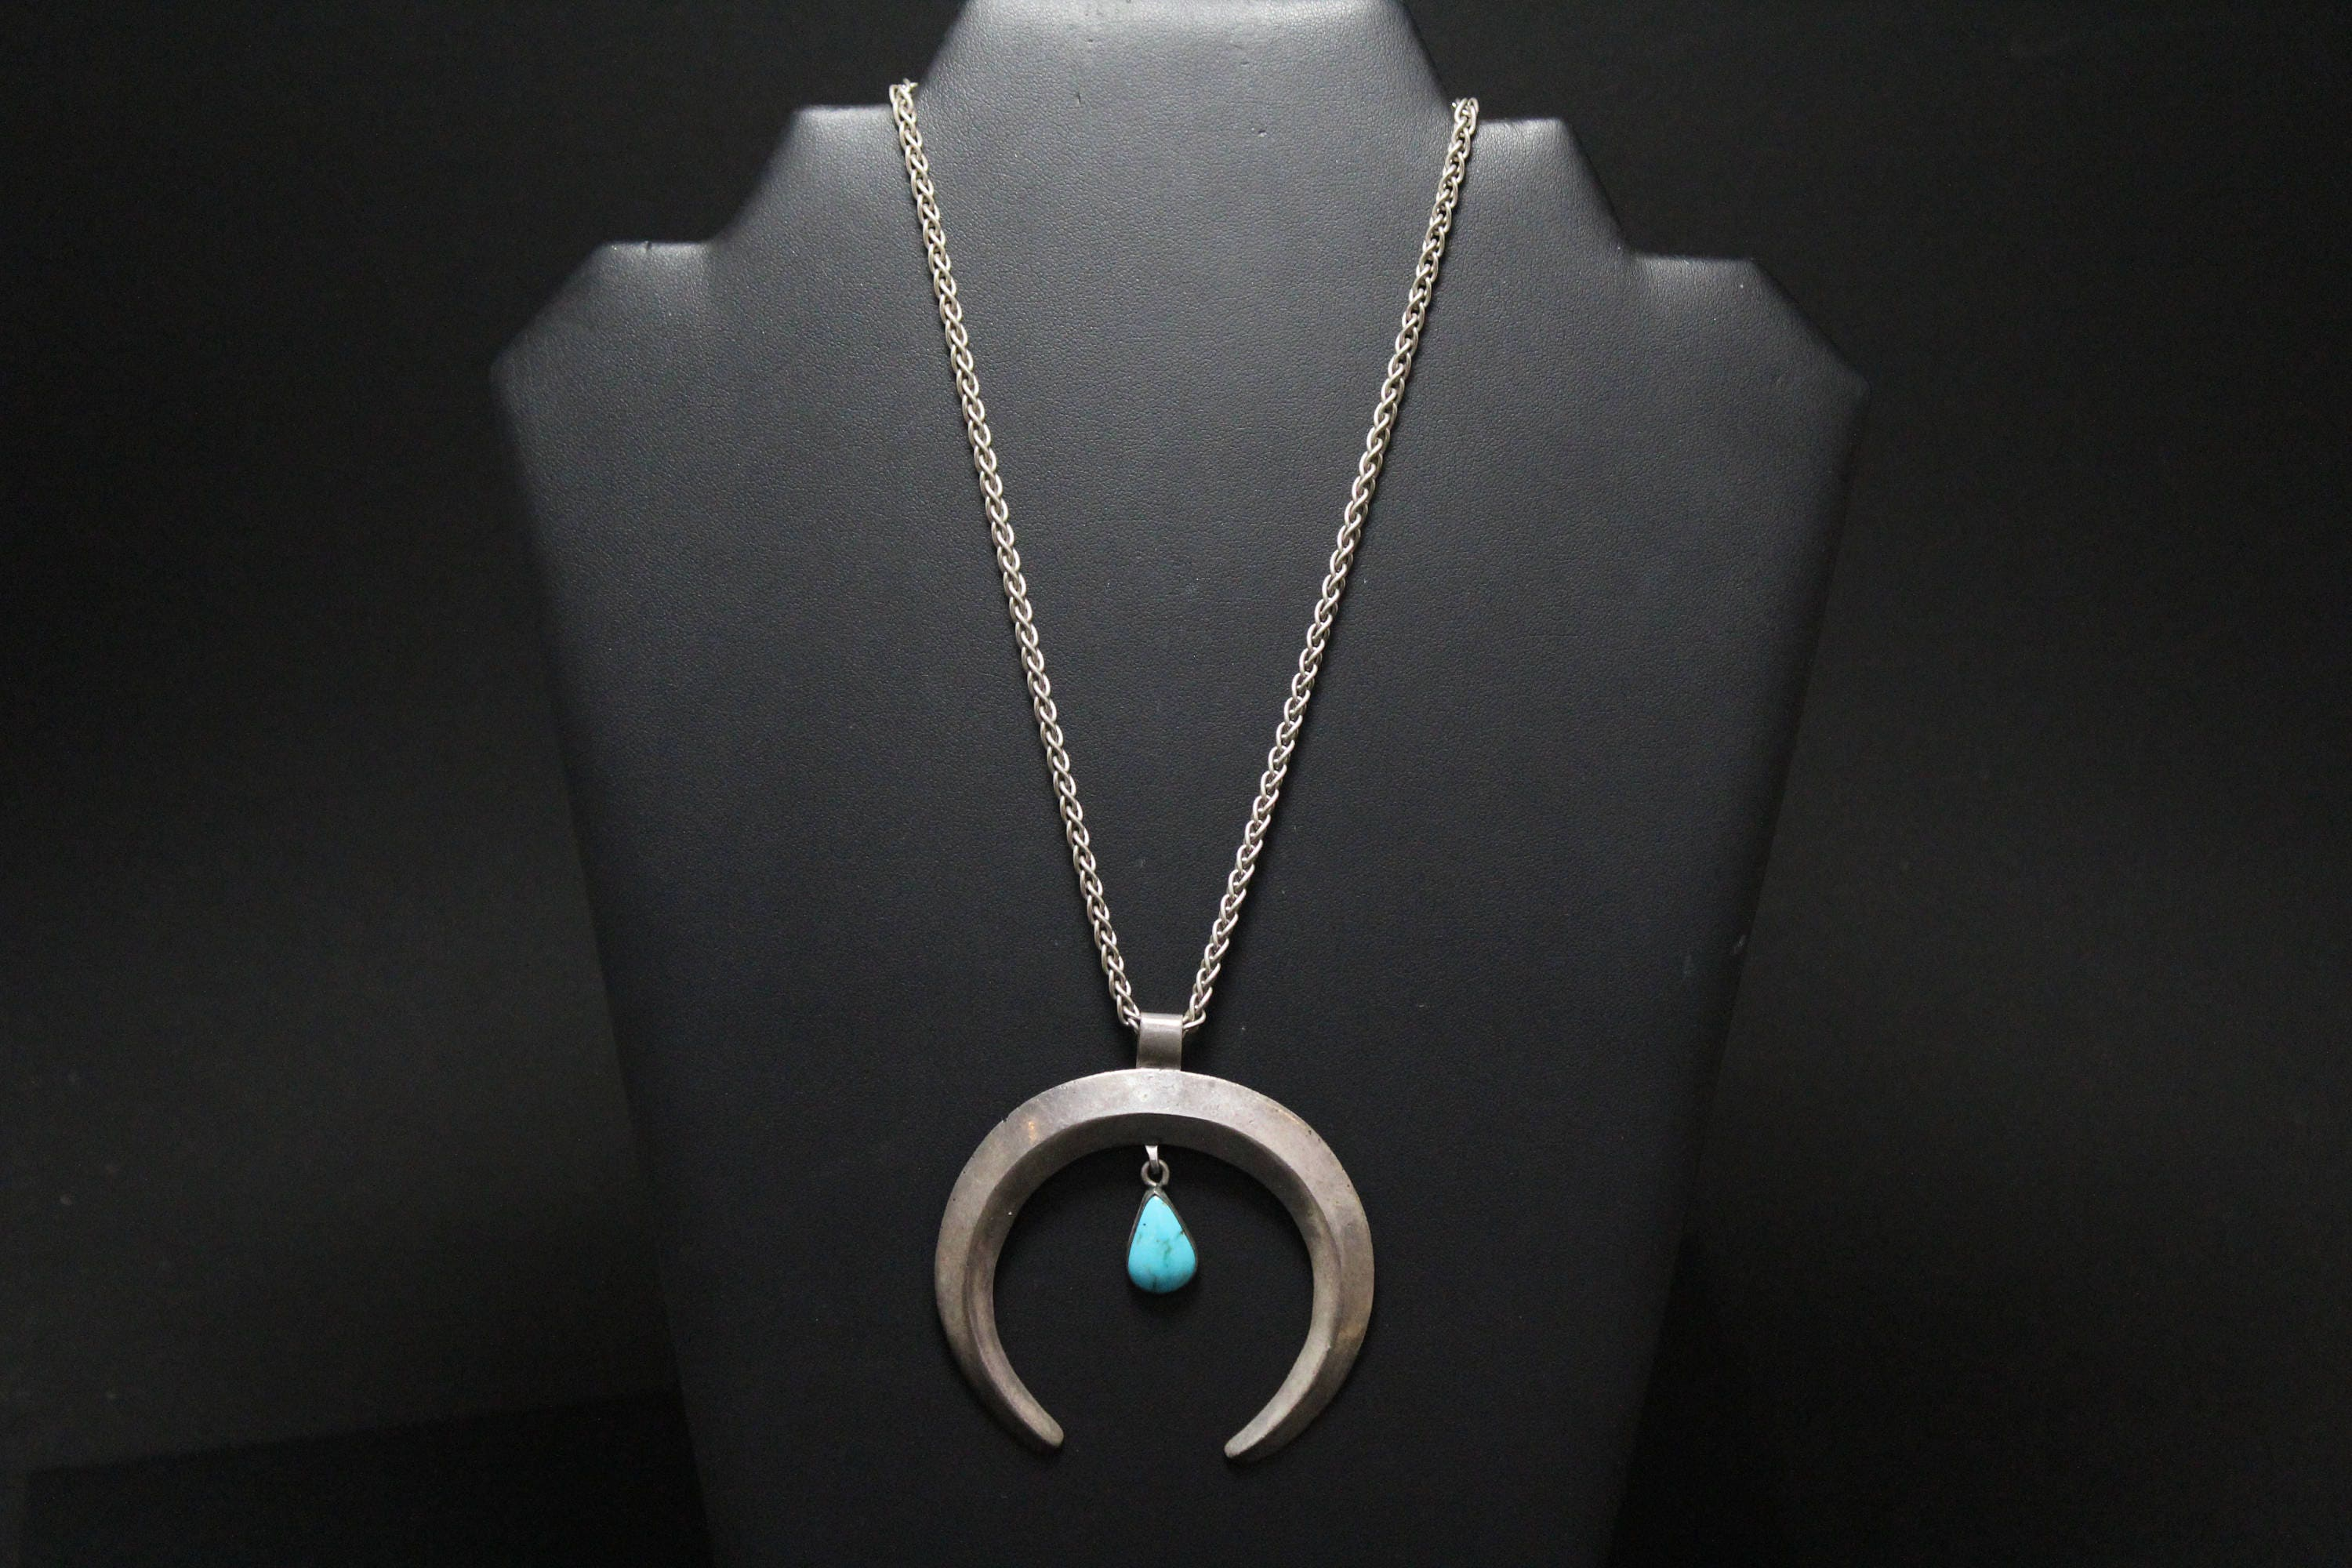 by turquoise american peter navajo blue necklace front ella moon pendant native